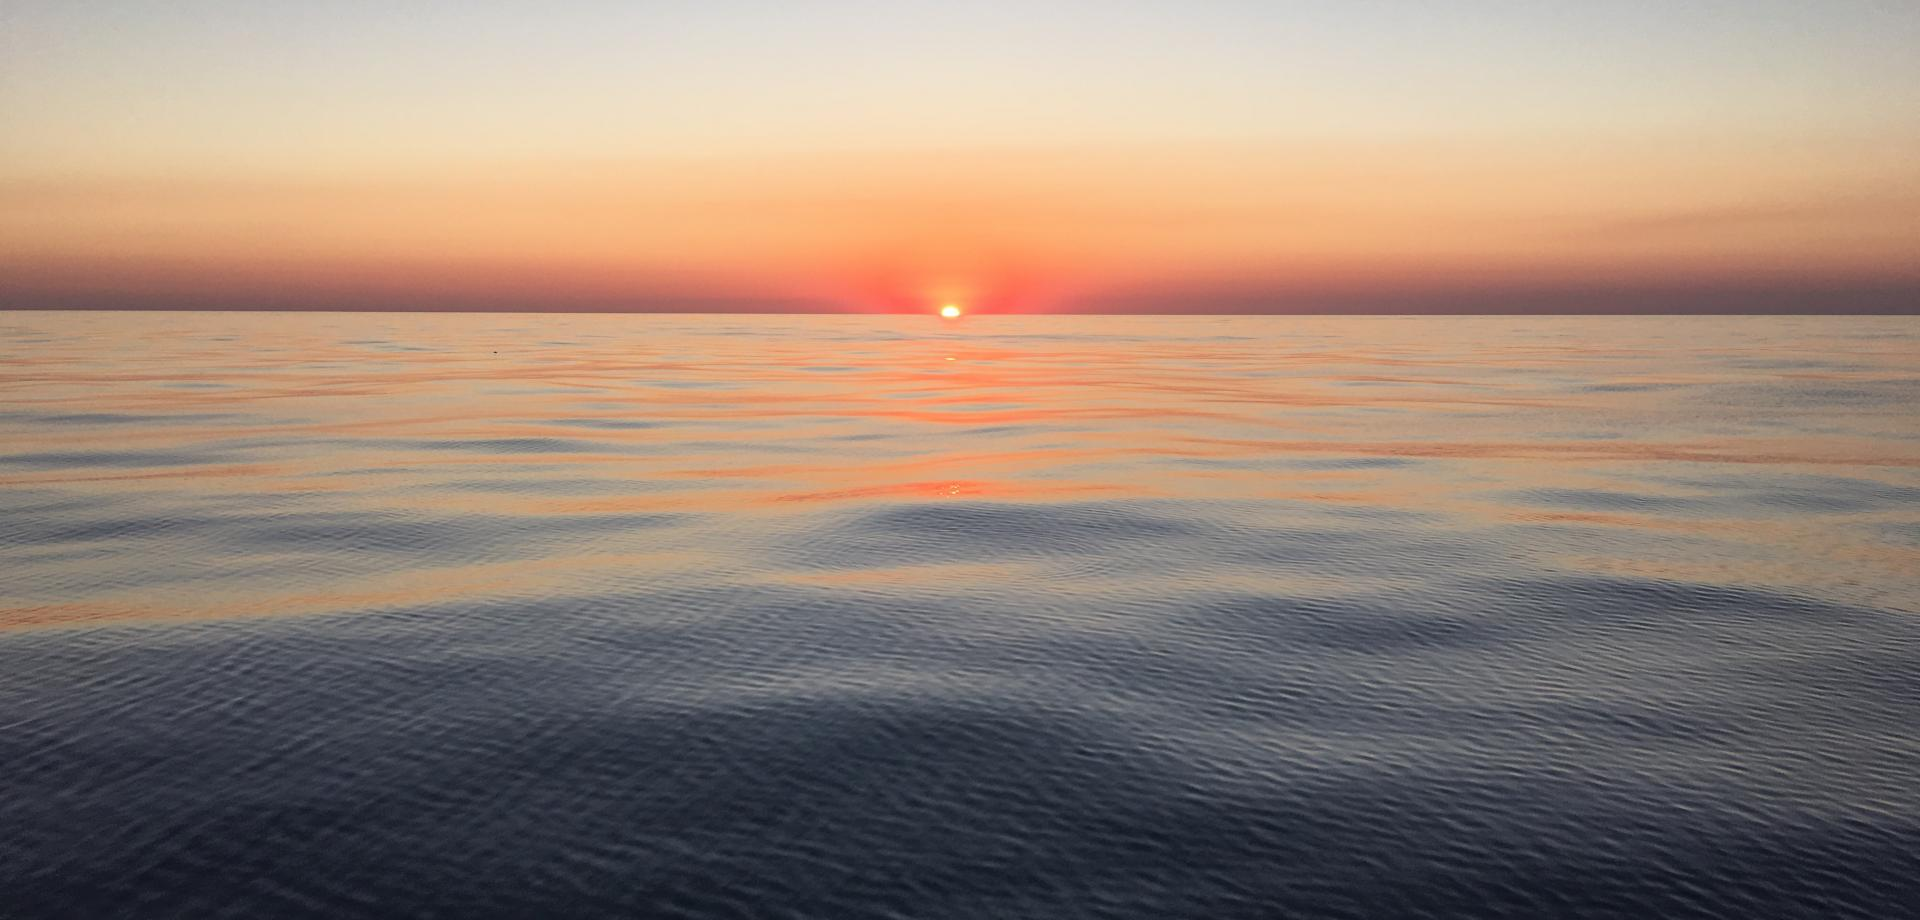 A sunset on the Mediterranean Sea